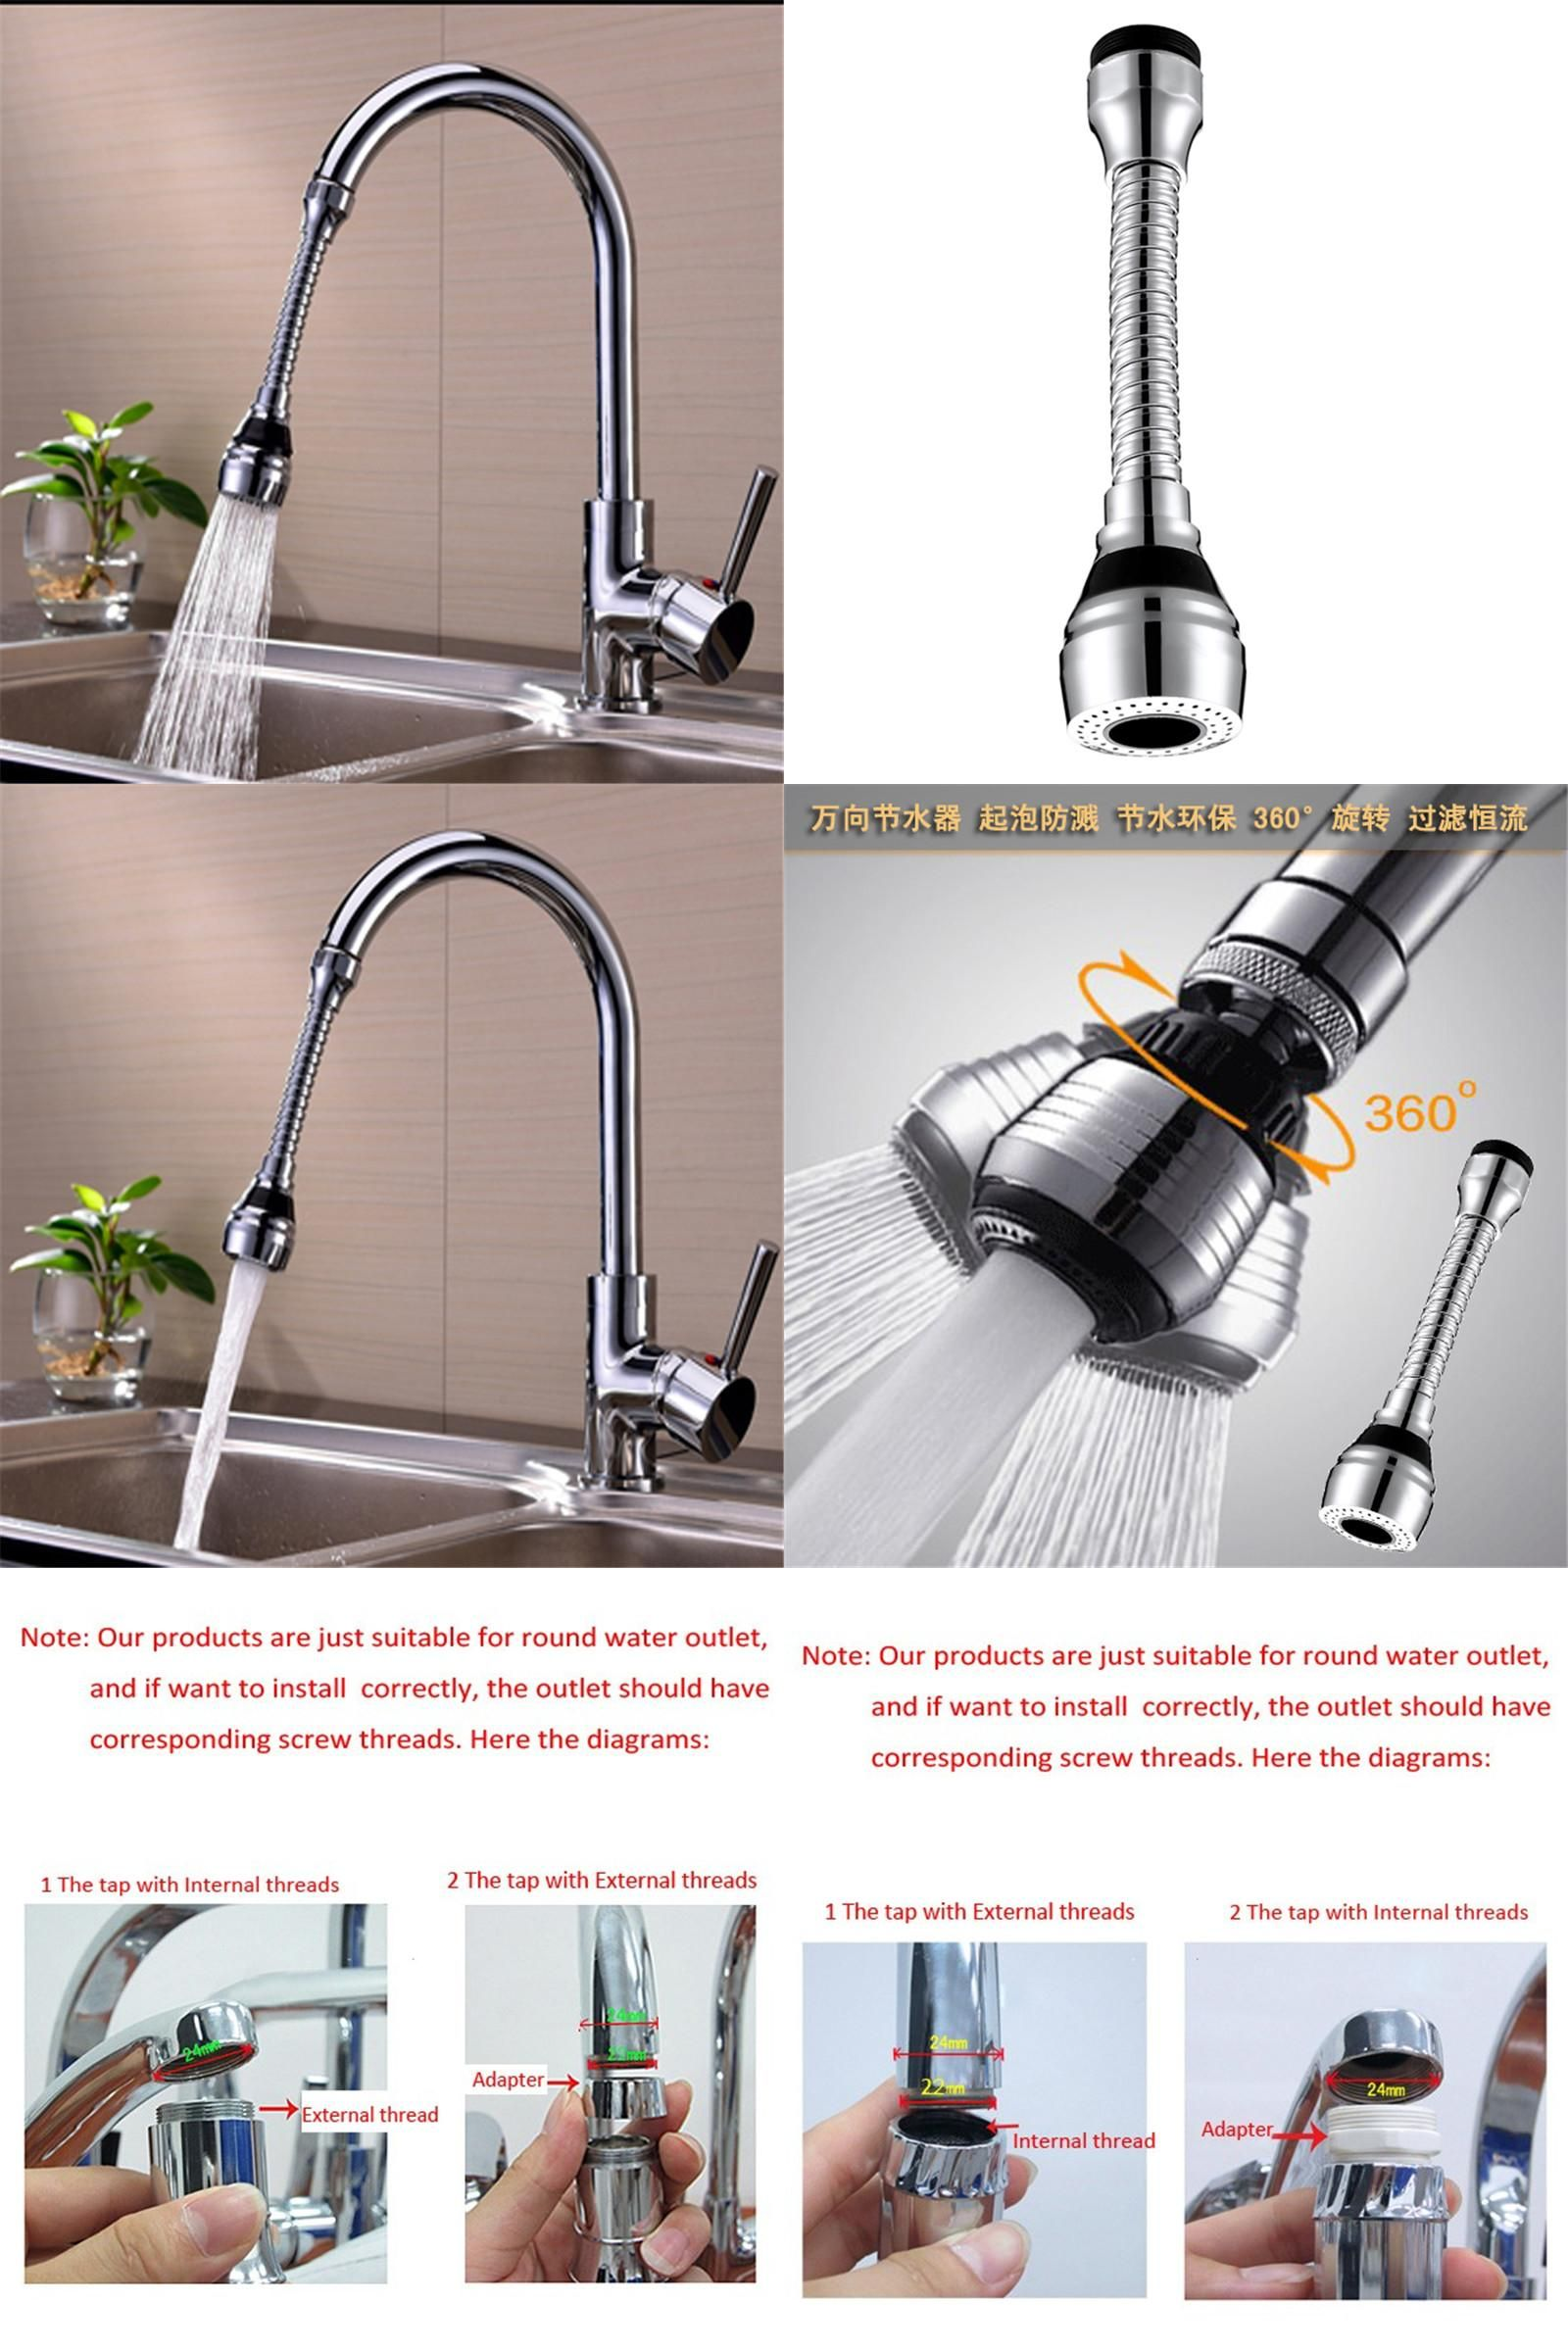 Visit To Buy Rotatable Water Saving Tap Aerator Diffuser Faucet Nozzle Filter Adapter Advertisement Water Saving Devices Faucet Aerators Faucet